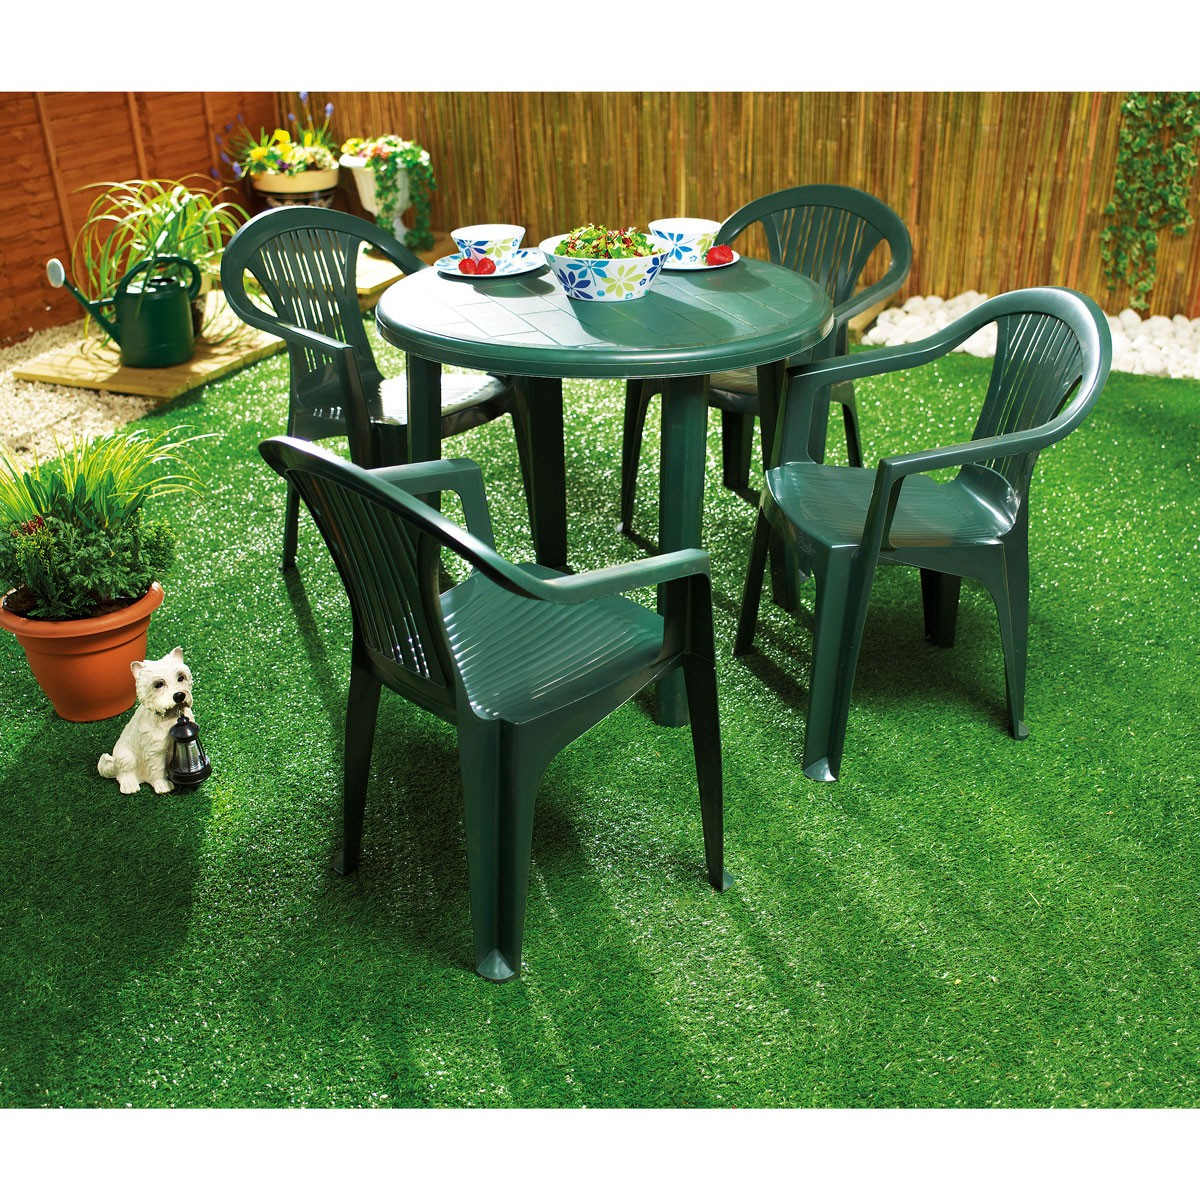 basic plastic garden furniture JYKWWOW